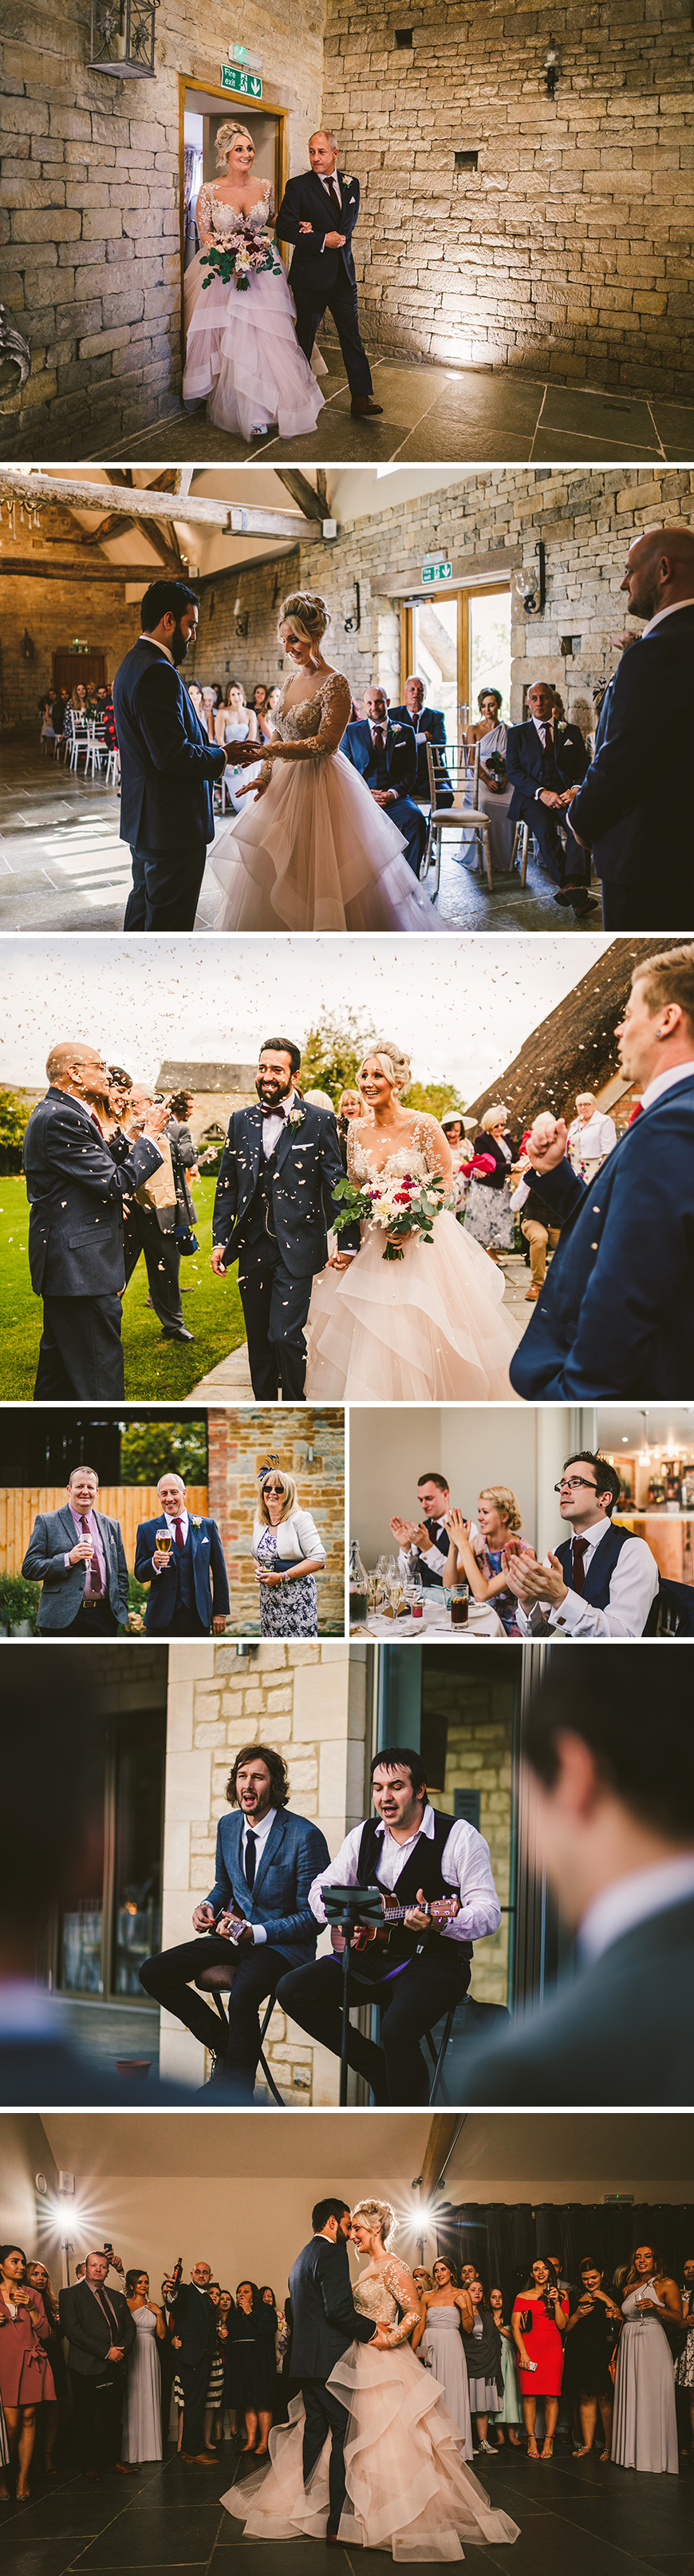 Real Wedding - Danielle and Lorance's Romantic Autumn Wedding at Blackwell Grange | CHWV